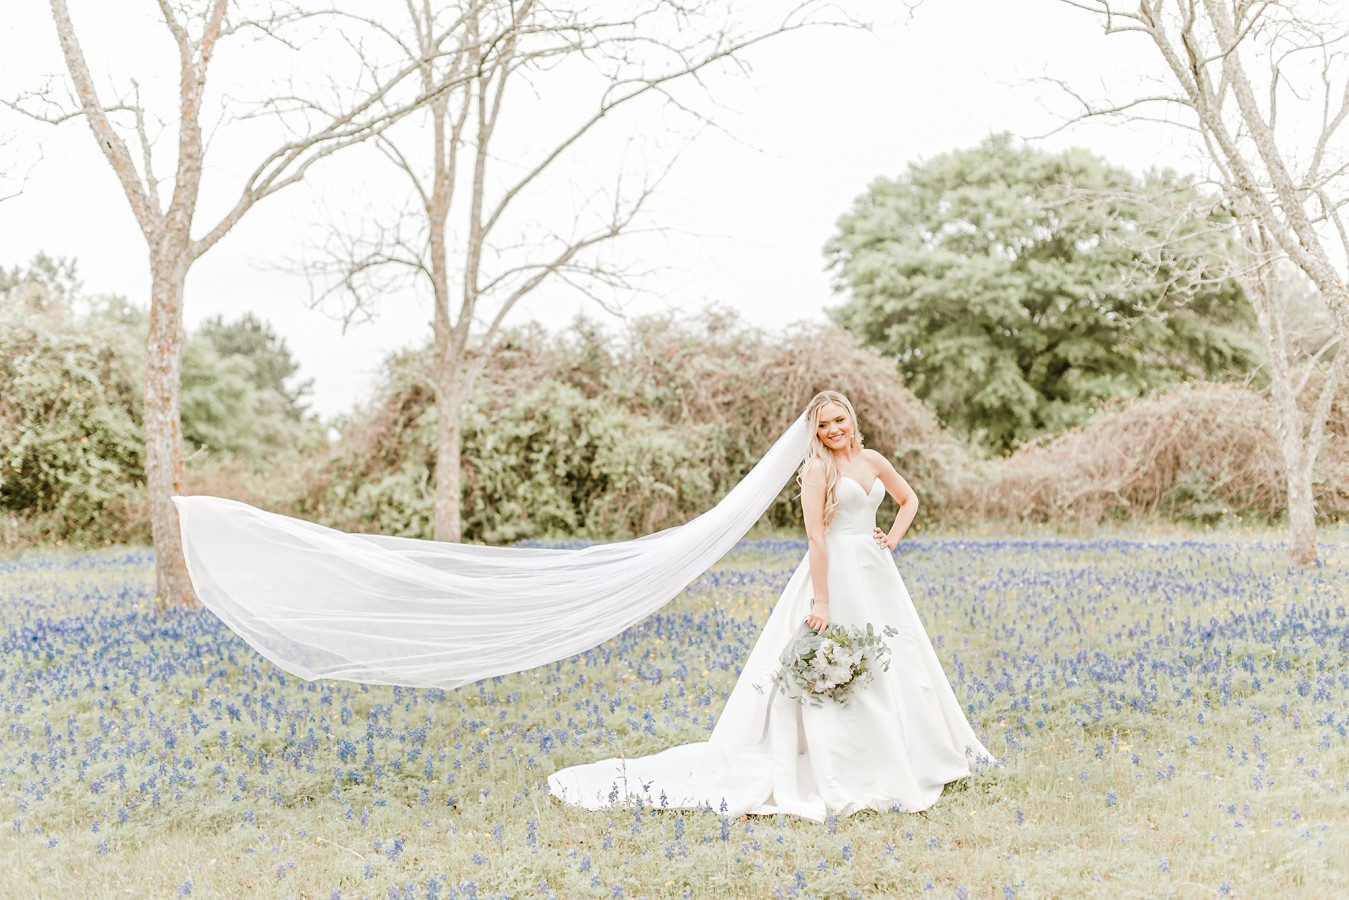 Houston Wedding Photography - Amy Maddox Photography